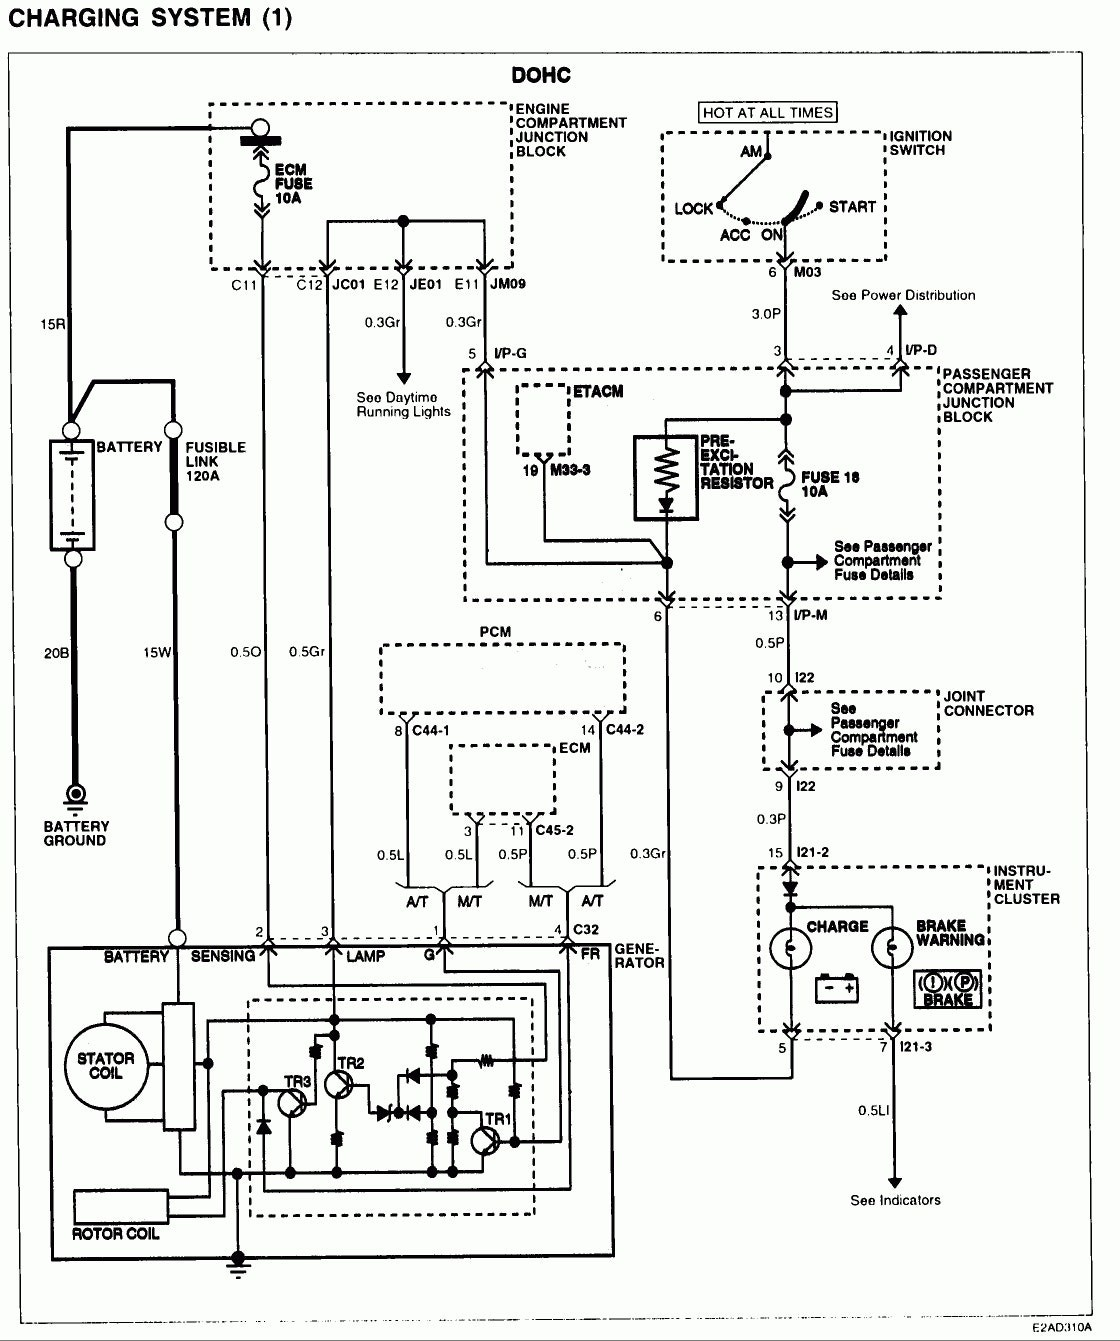 hyundai 2 0 engine diagram online wiring diagram. Black Bedroom Furniture Sets. Home Design Ideas